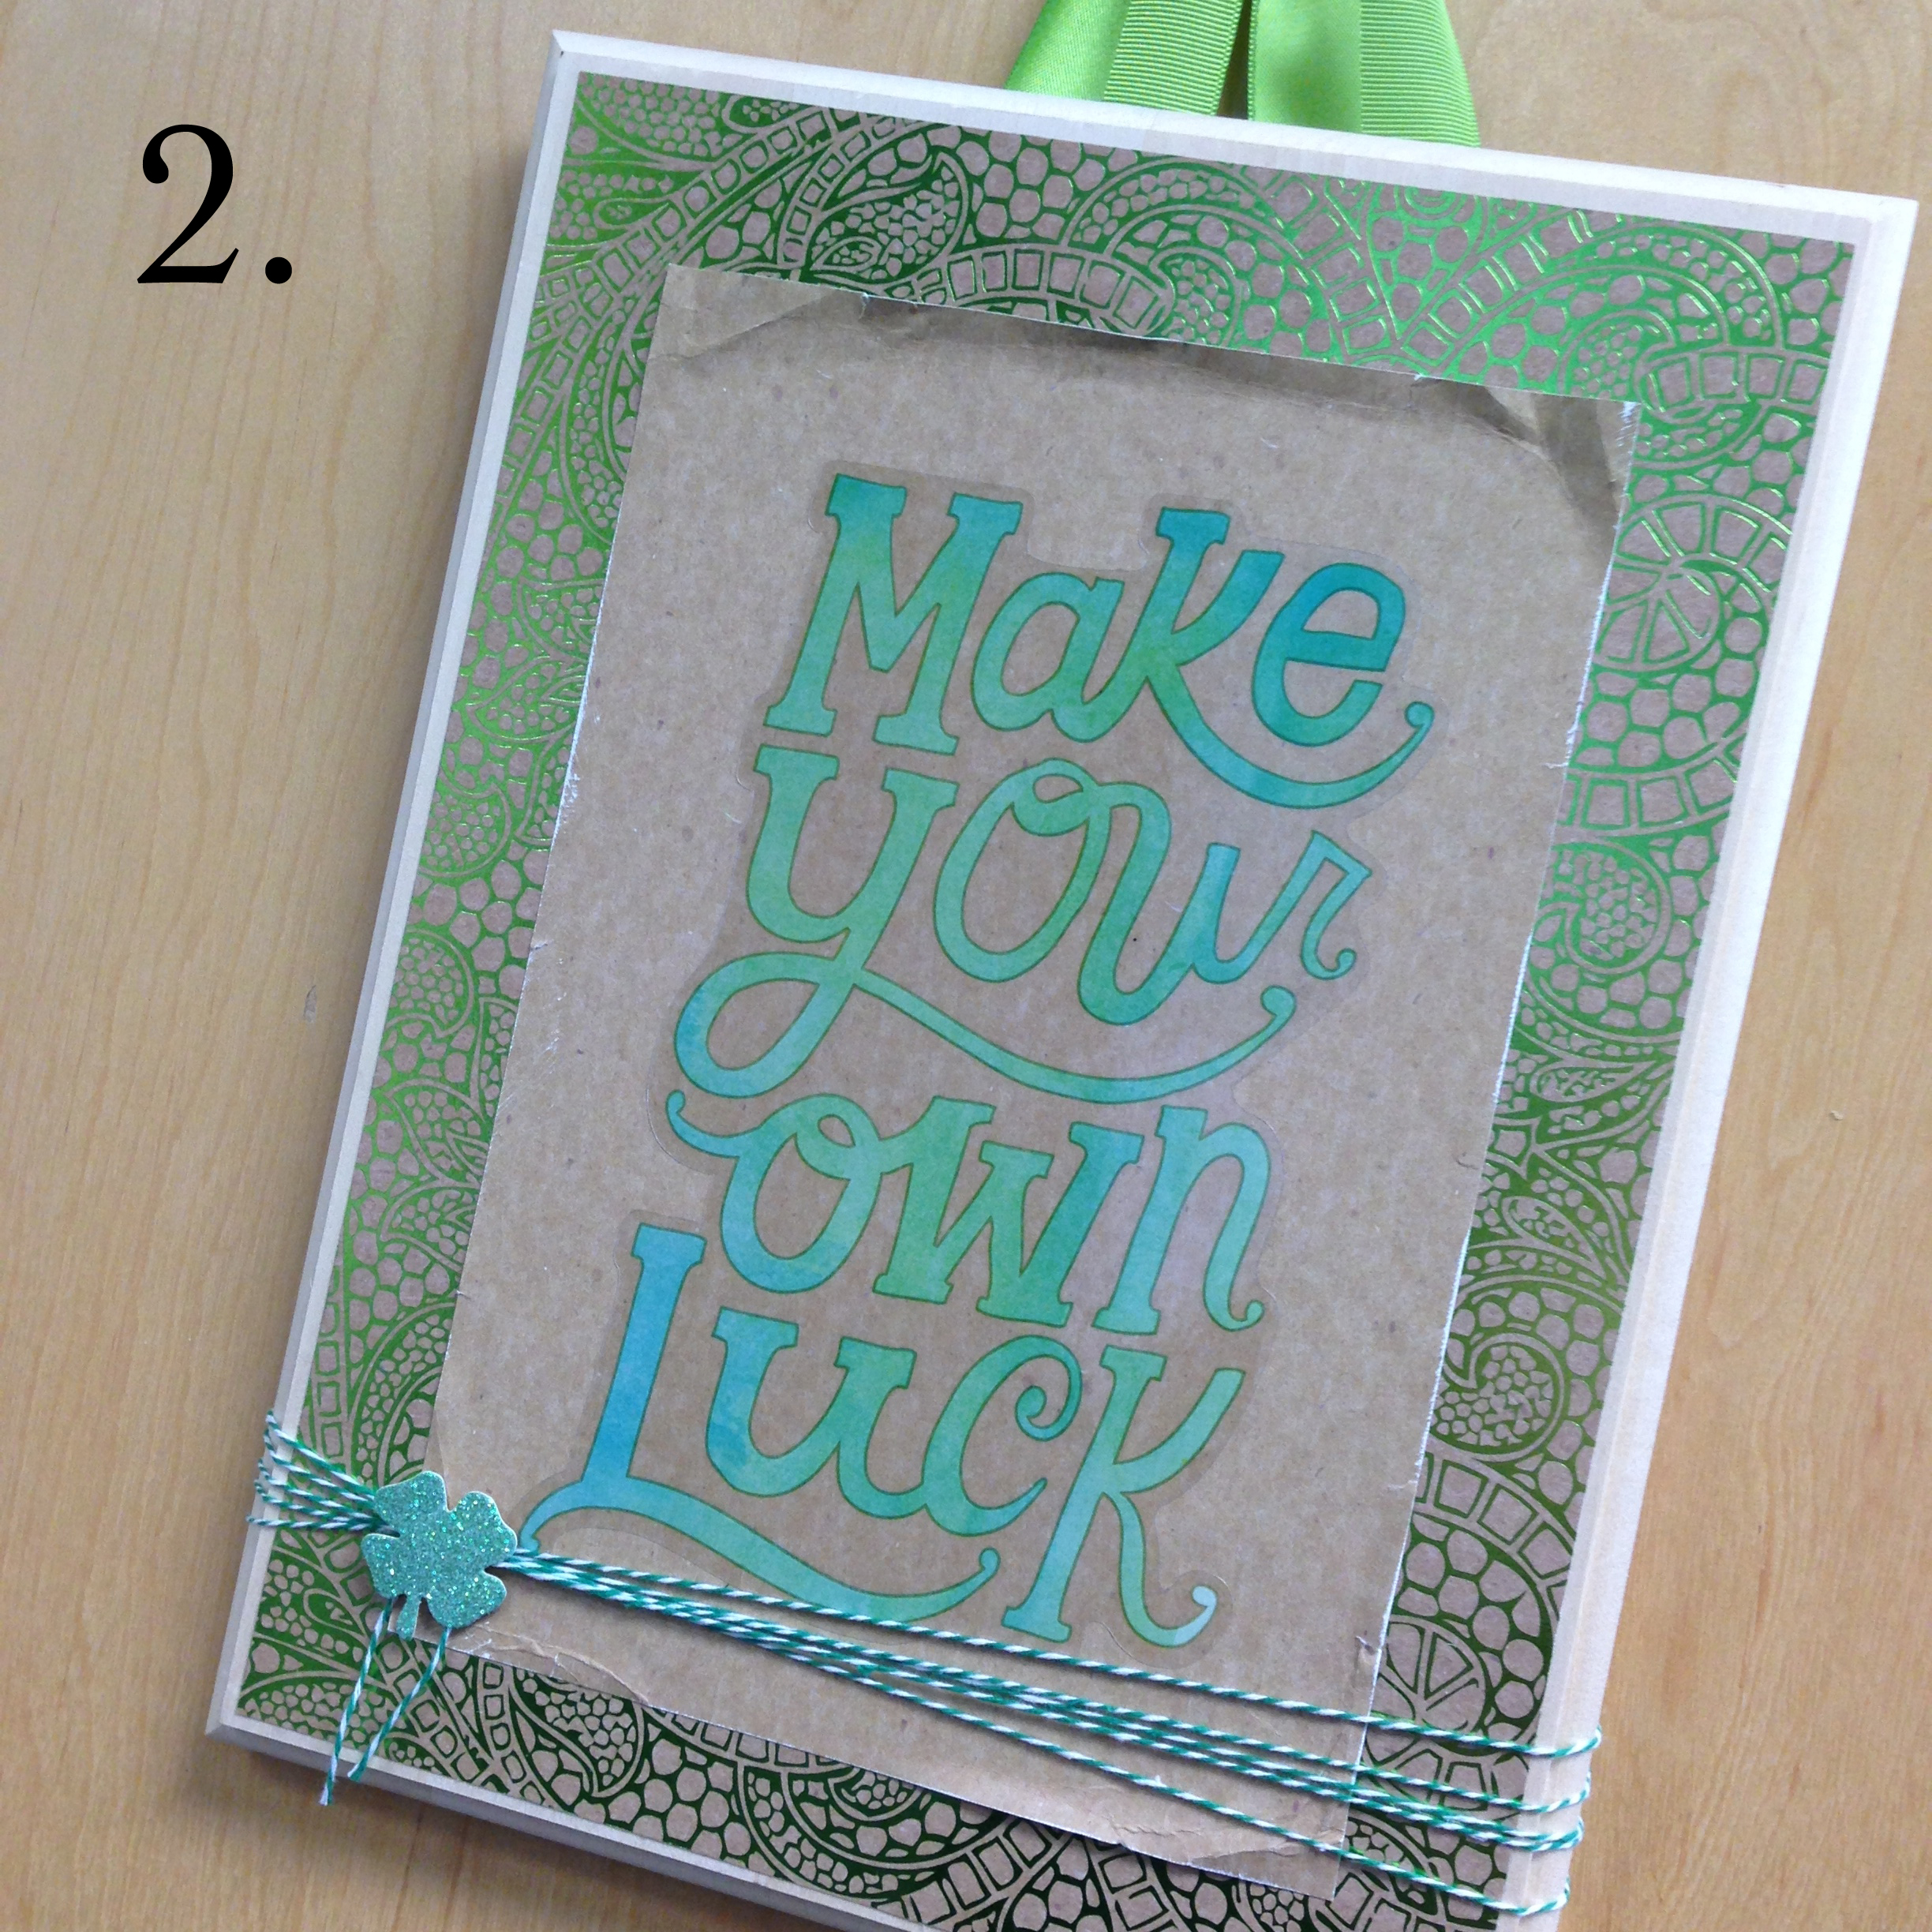 2. Make Your Own Luck St. Patrick's Day themed hanging DIY decor using mambi JUMBO stickers now at Michaels. .jpg